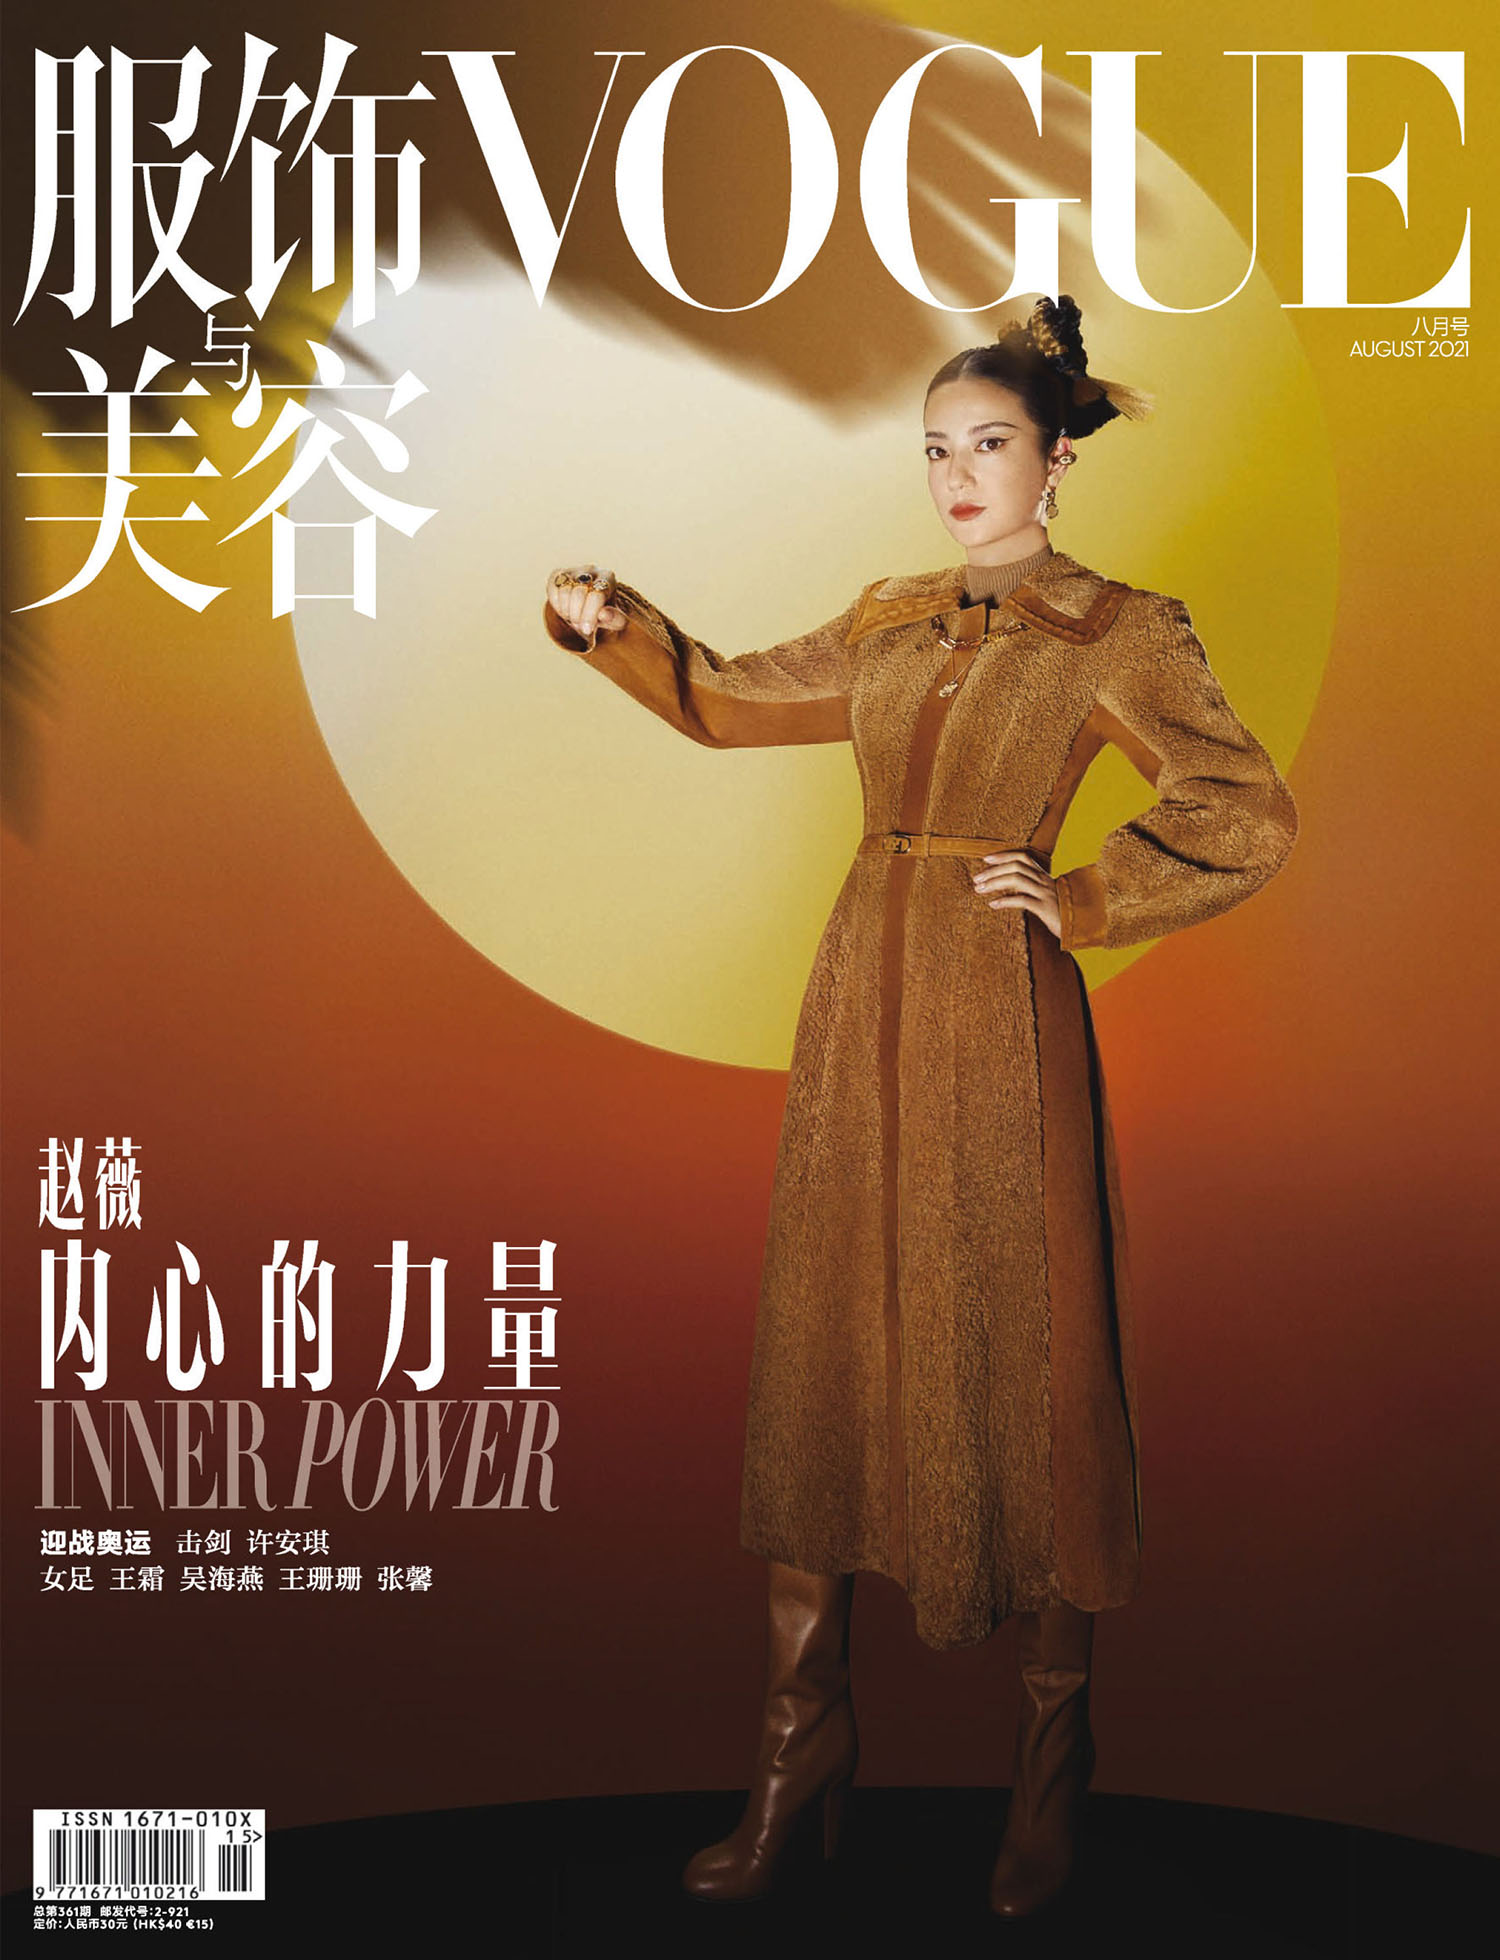 Vicki Zhao covers Vogue China August 2021 by Tuo Yi